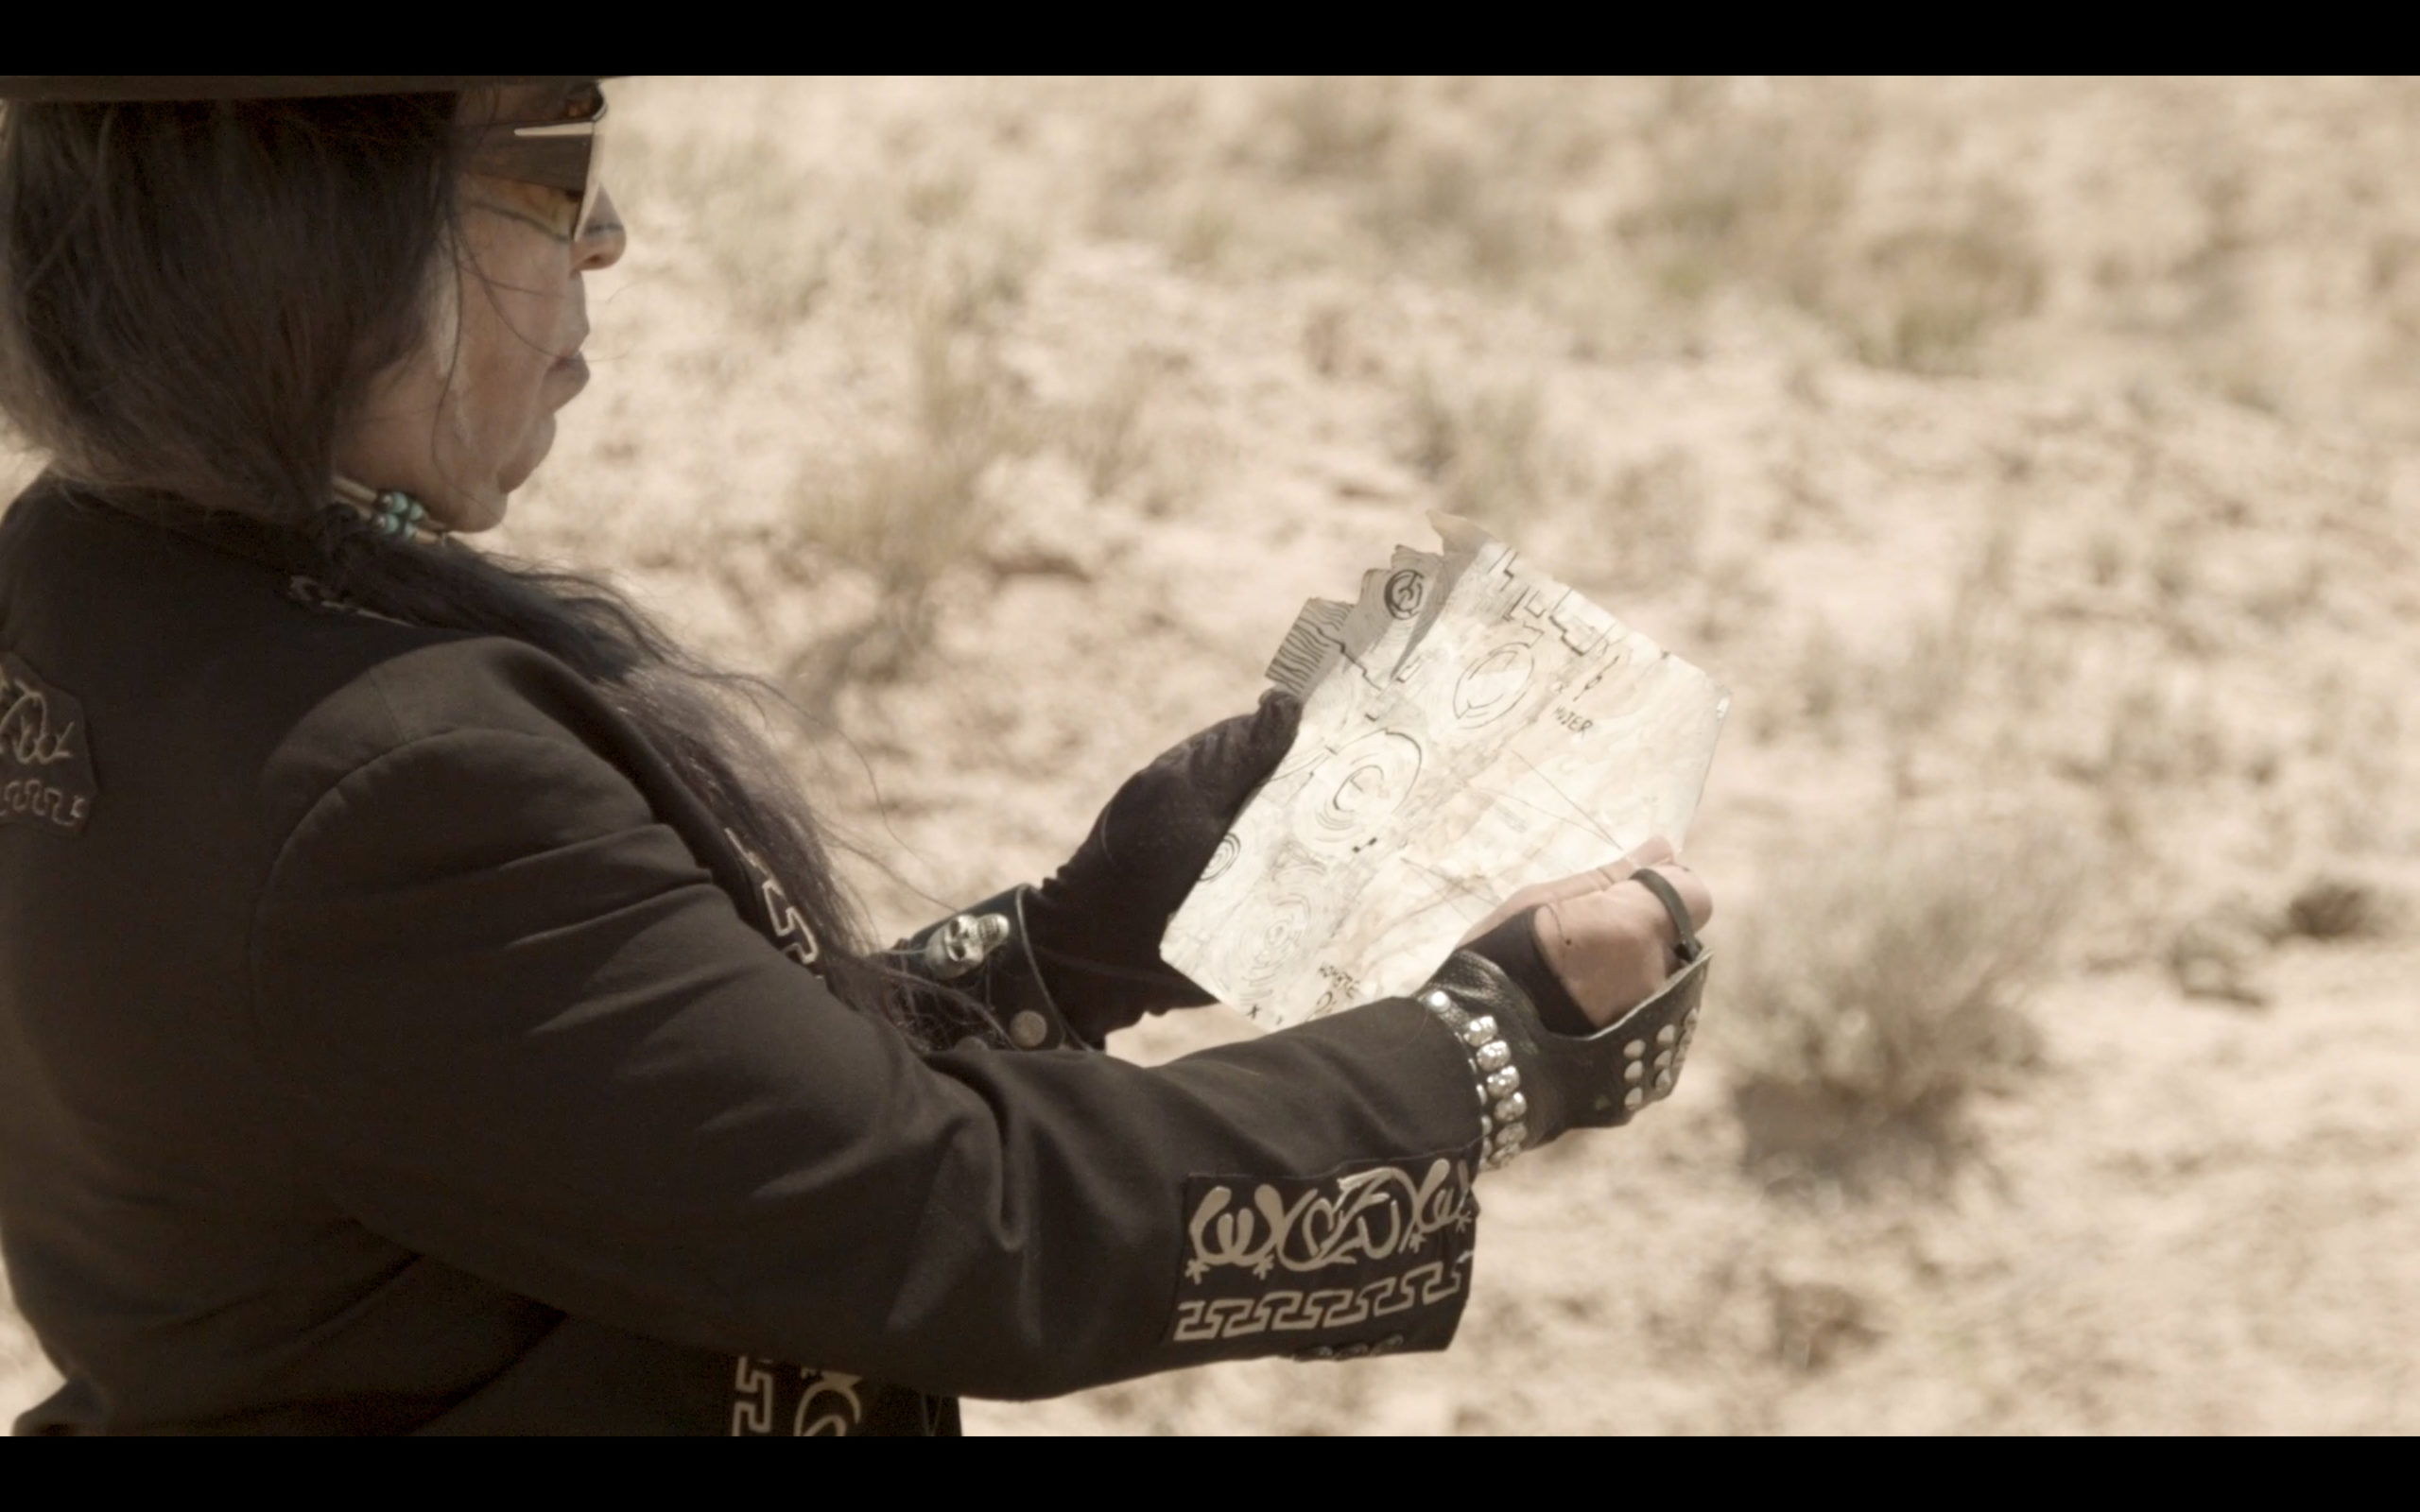 film still of a man holding a piece of paper (a map?) against a desert background